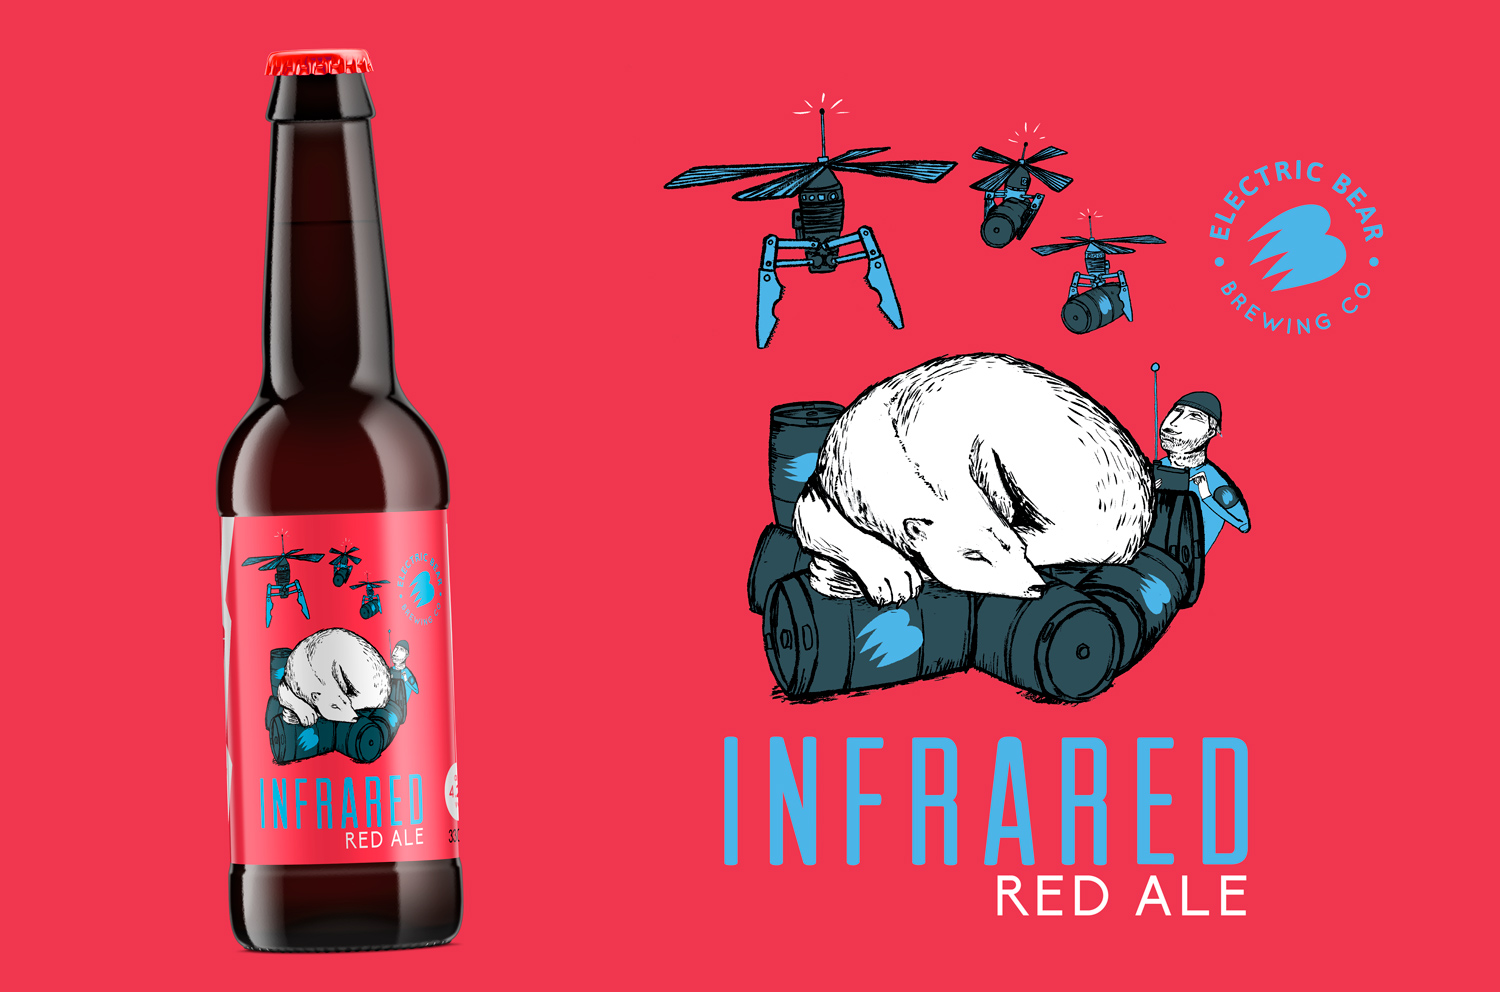 Infrared red ale bottle design, bear illustration